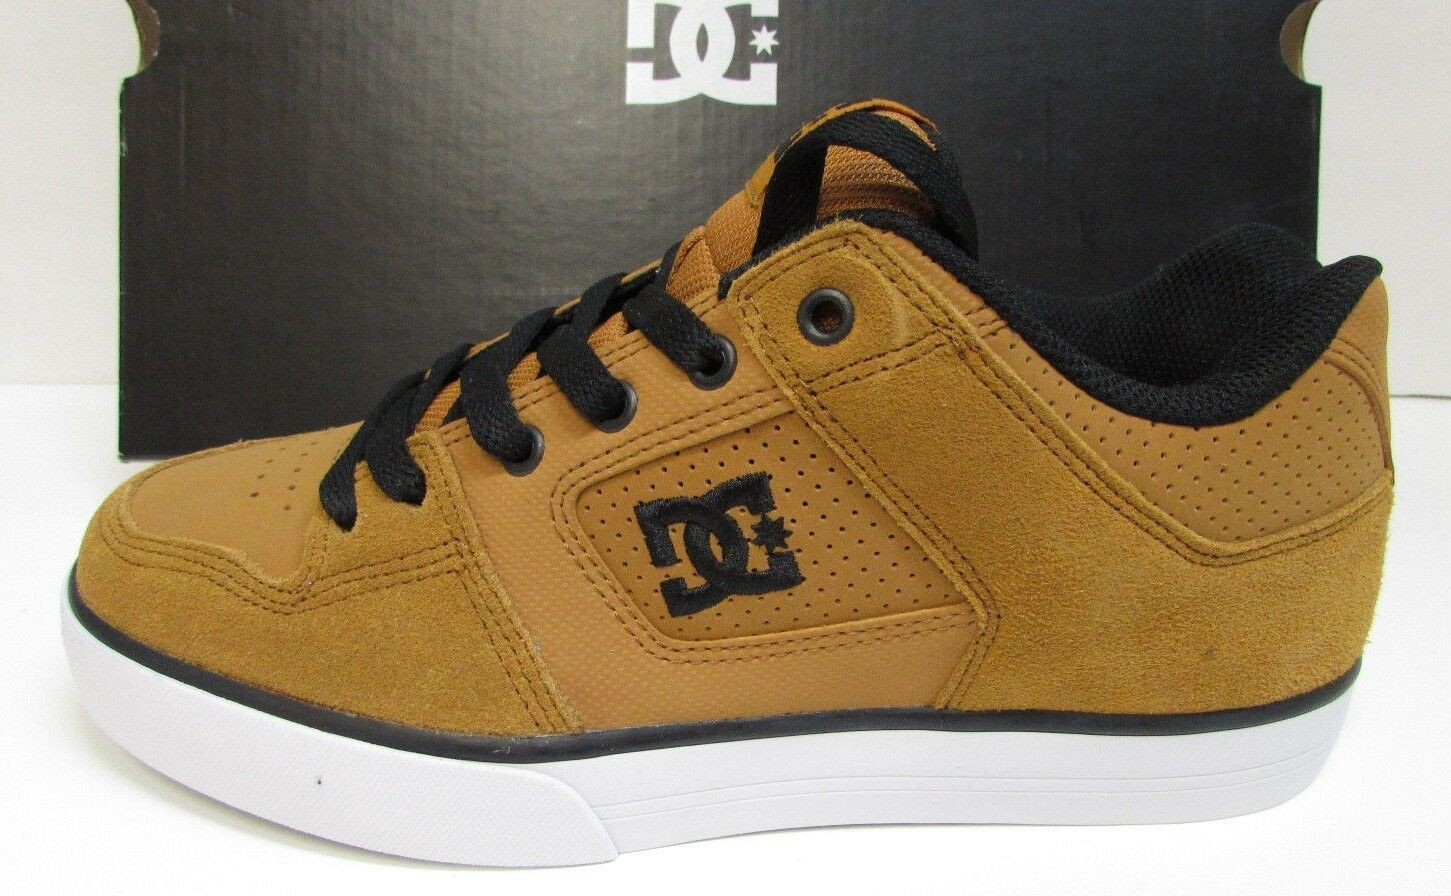 DC SkateBoard Size Size SkateBoard 7.5 Tan Leather Sneakers New Mens Shoes 9909f4